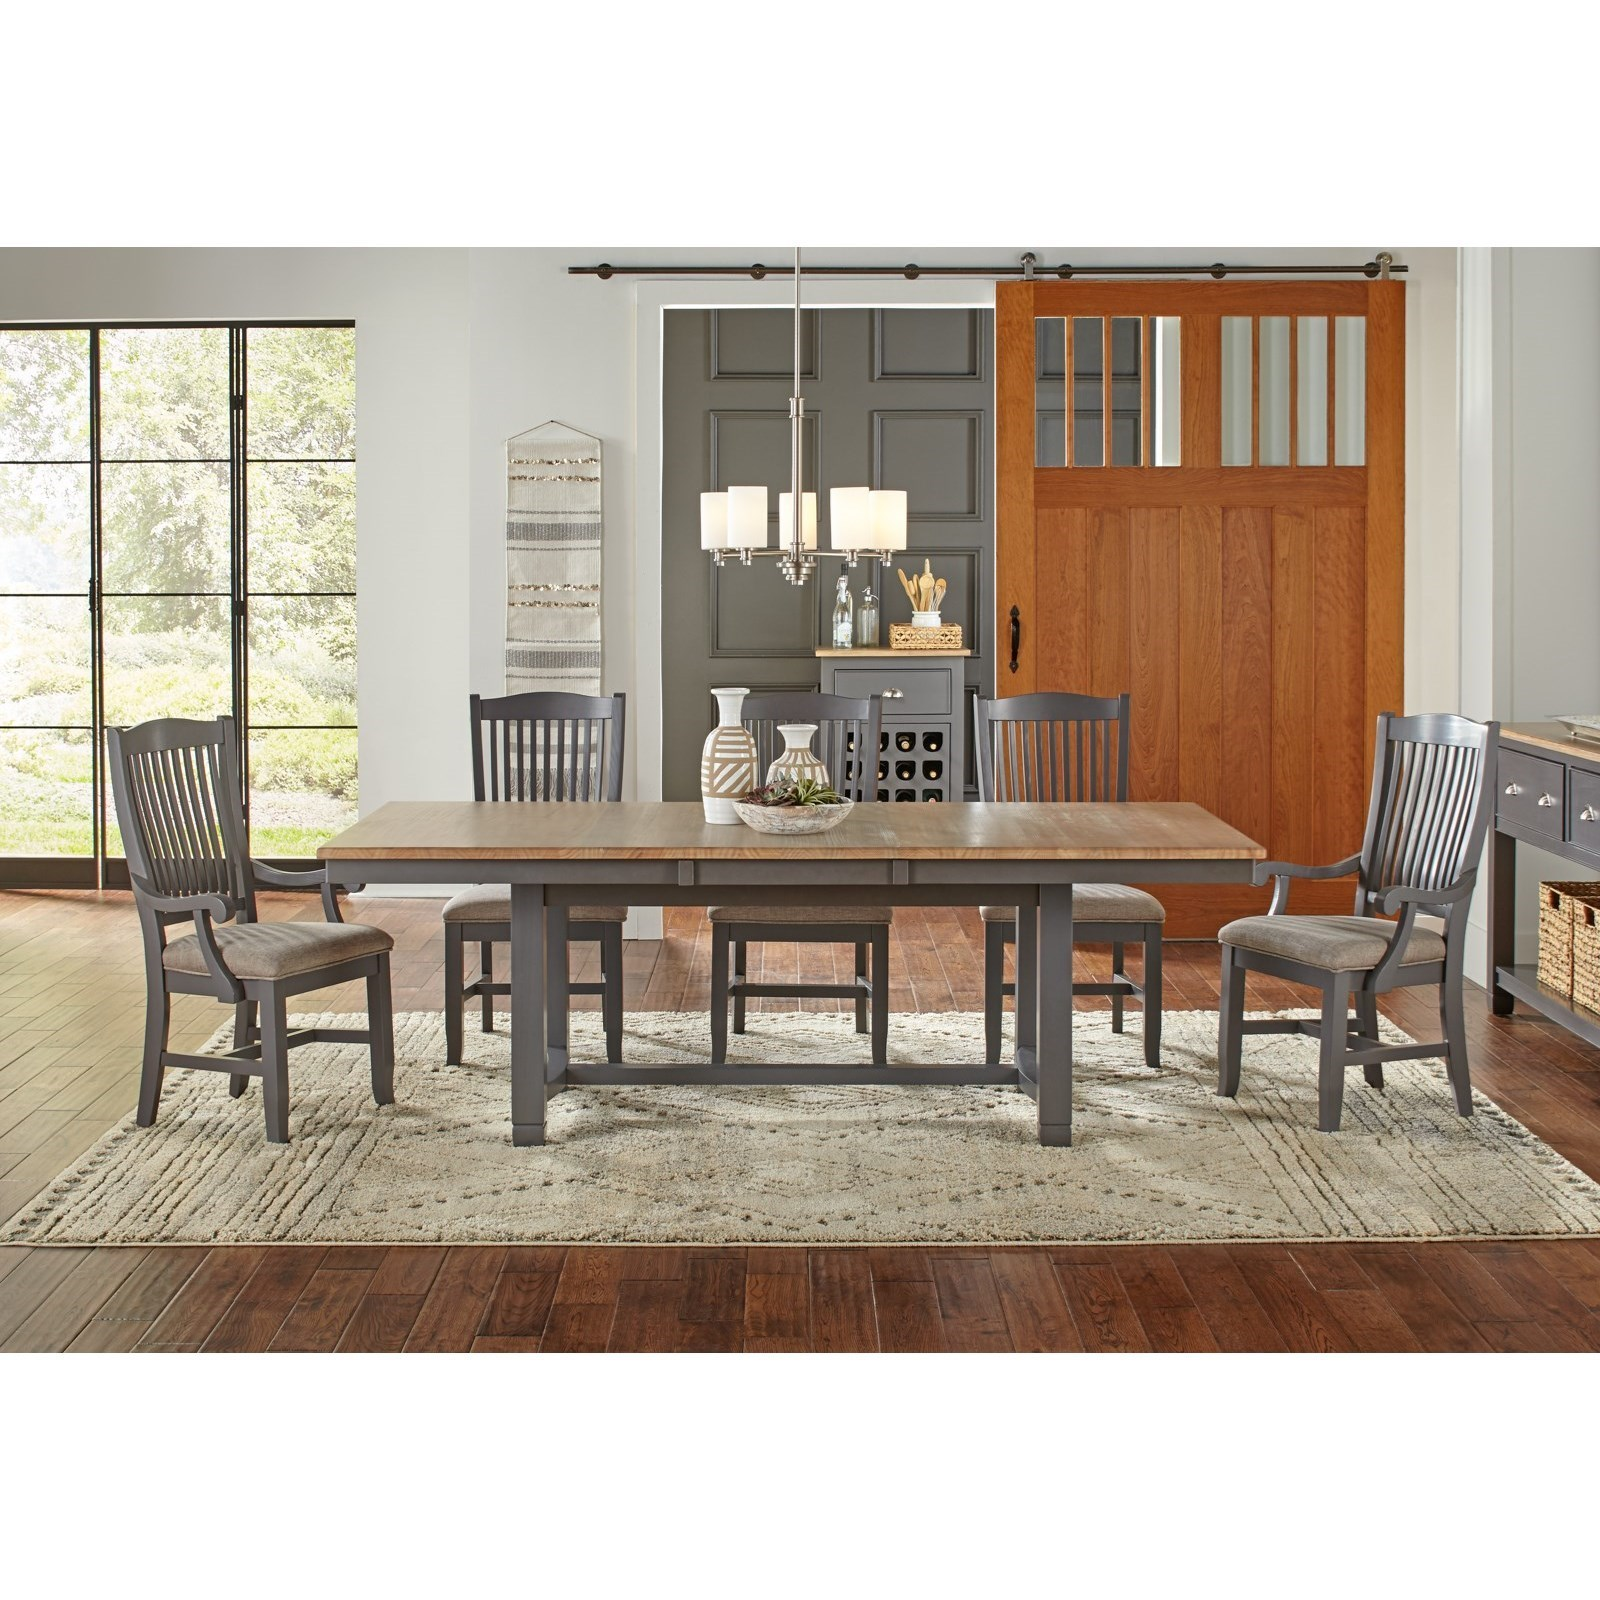 AAmerica Port Townsend Rectangular Trestle Dining Table   Coconis Furniture  U0026 Mattress 1st   Dining Tables